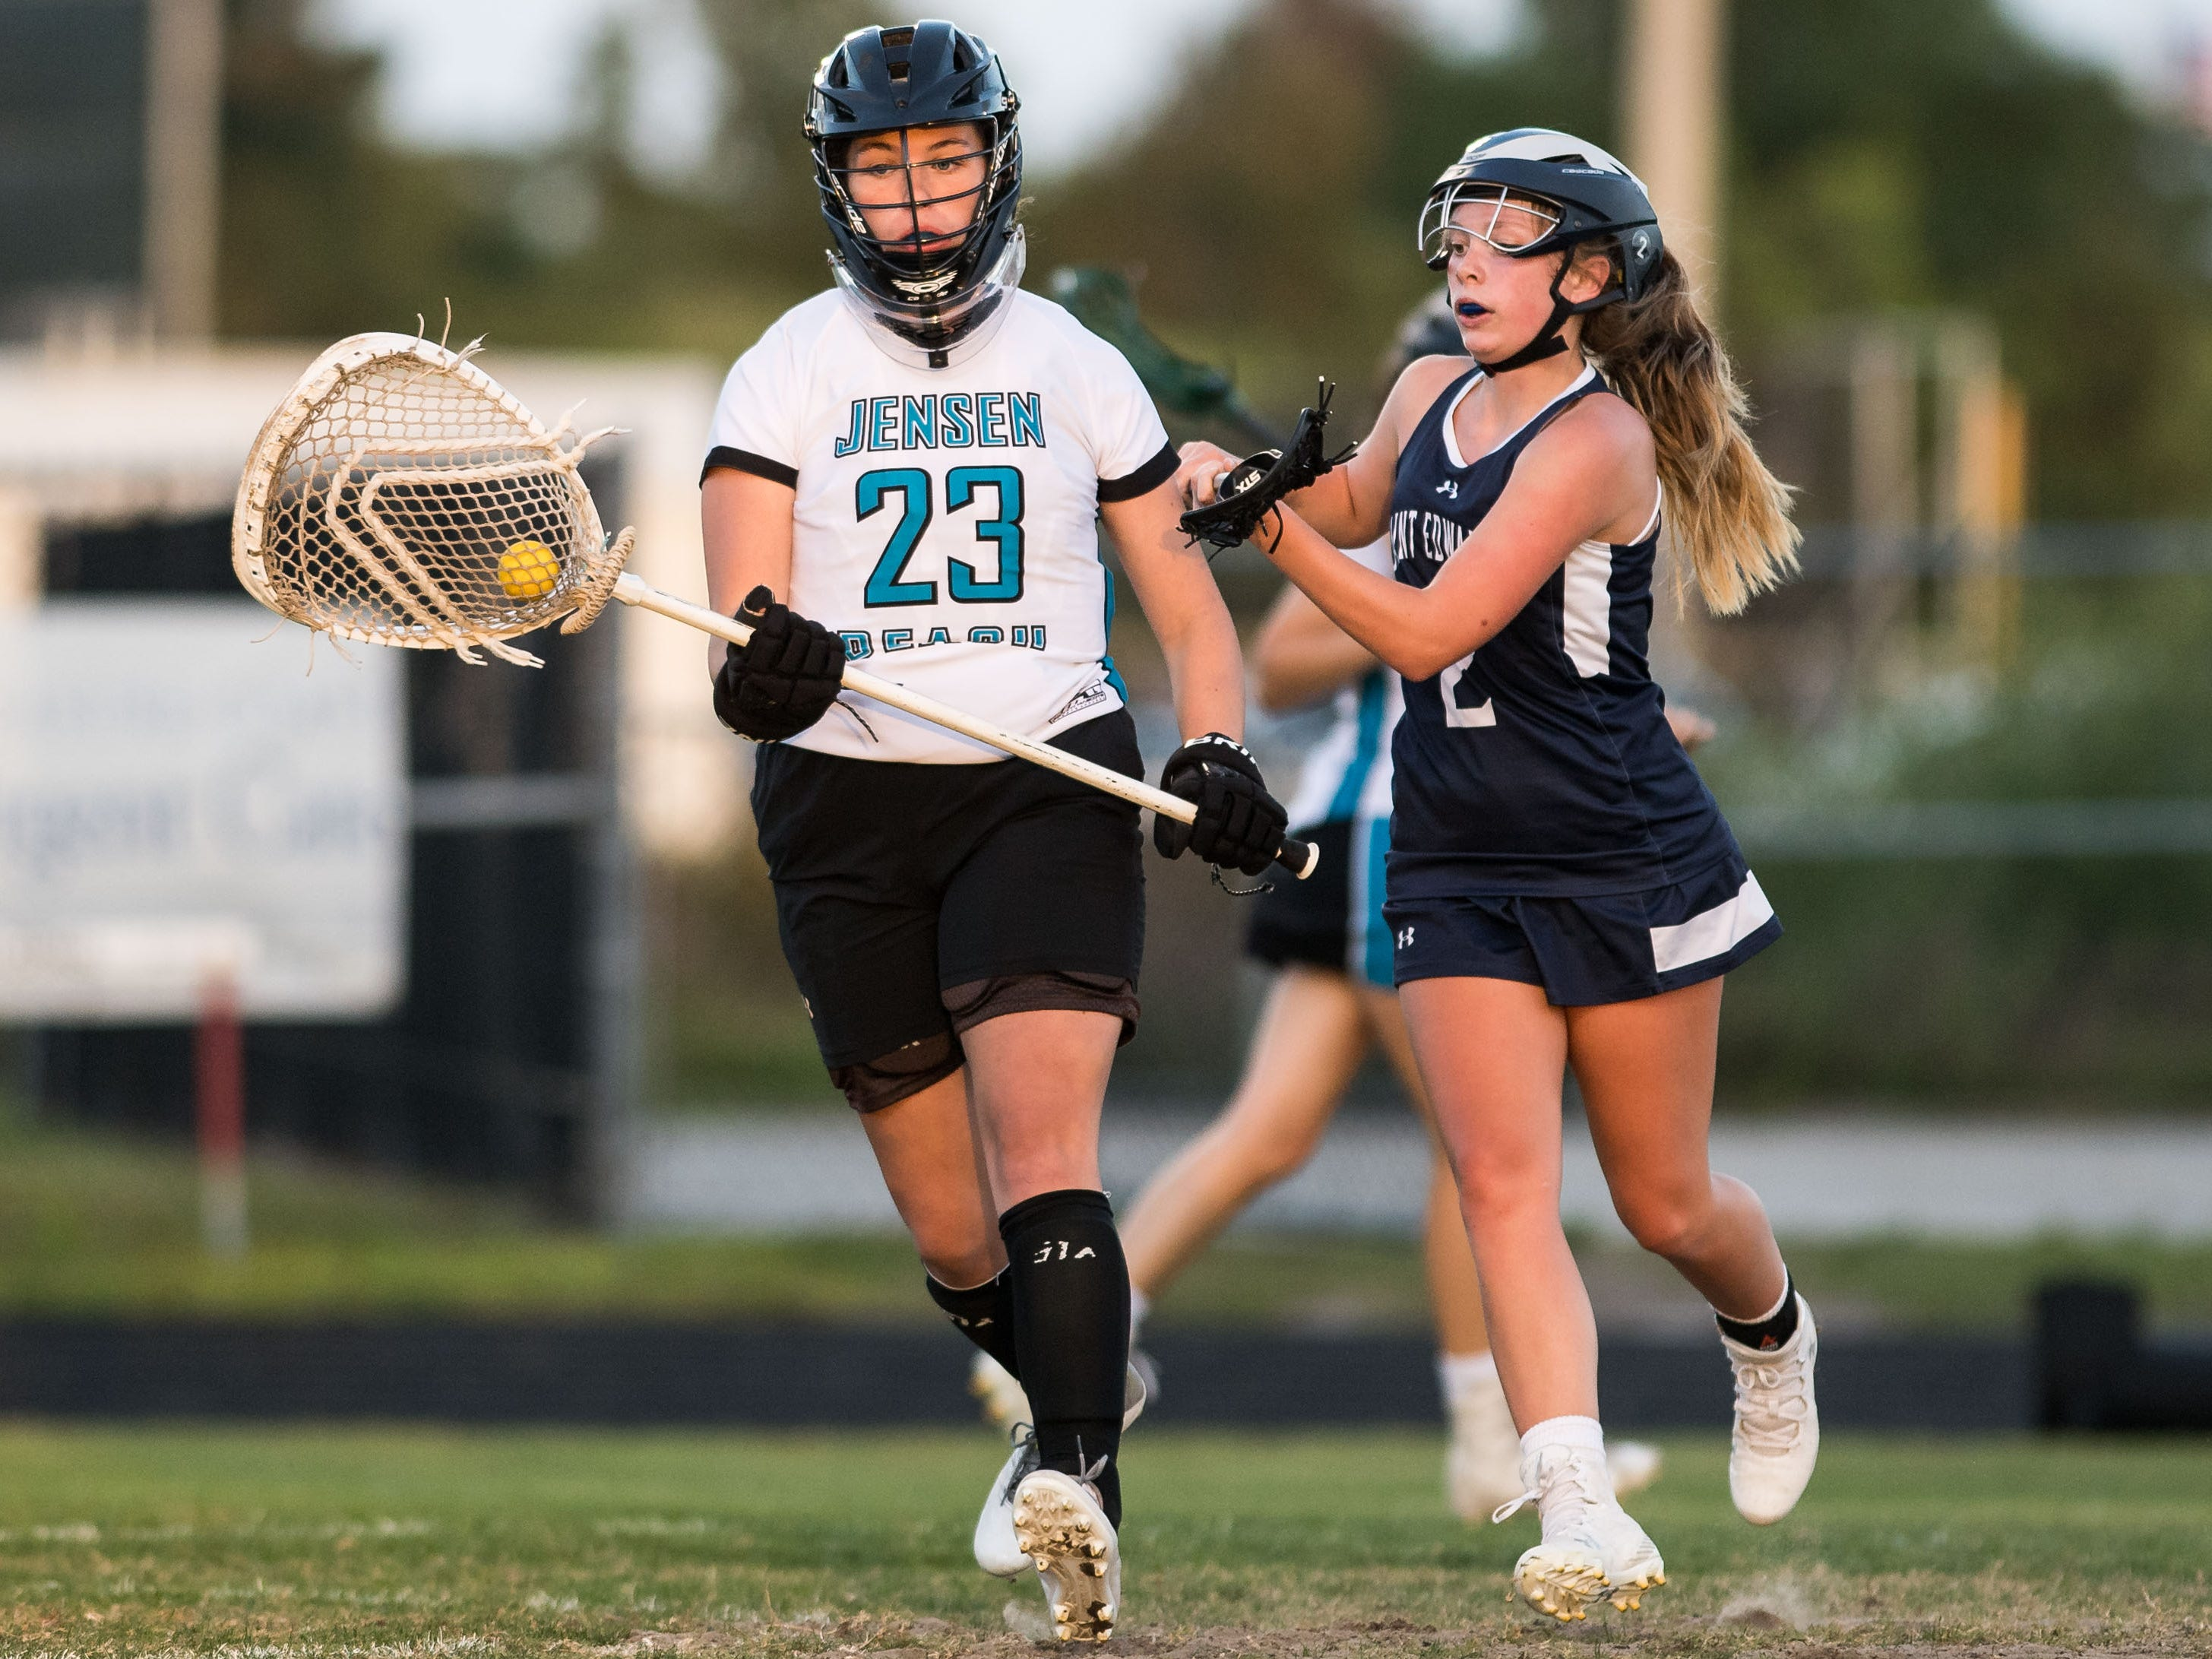 St. Edward's Molly McGee (right) pressures Jensen Beach goalkeeper Rachel Dionne after she saves a shot in the second half of the high school girls lacrosse game Thursday, March 28, 2019, at Jensen Beach High School.